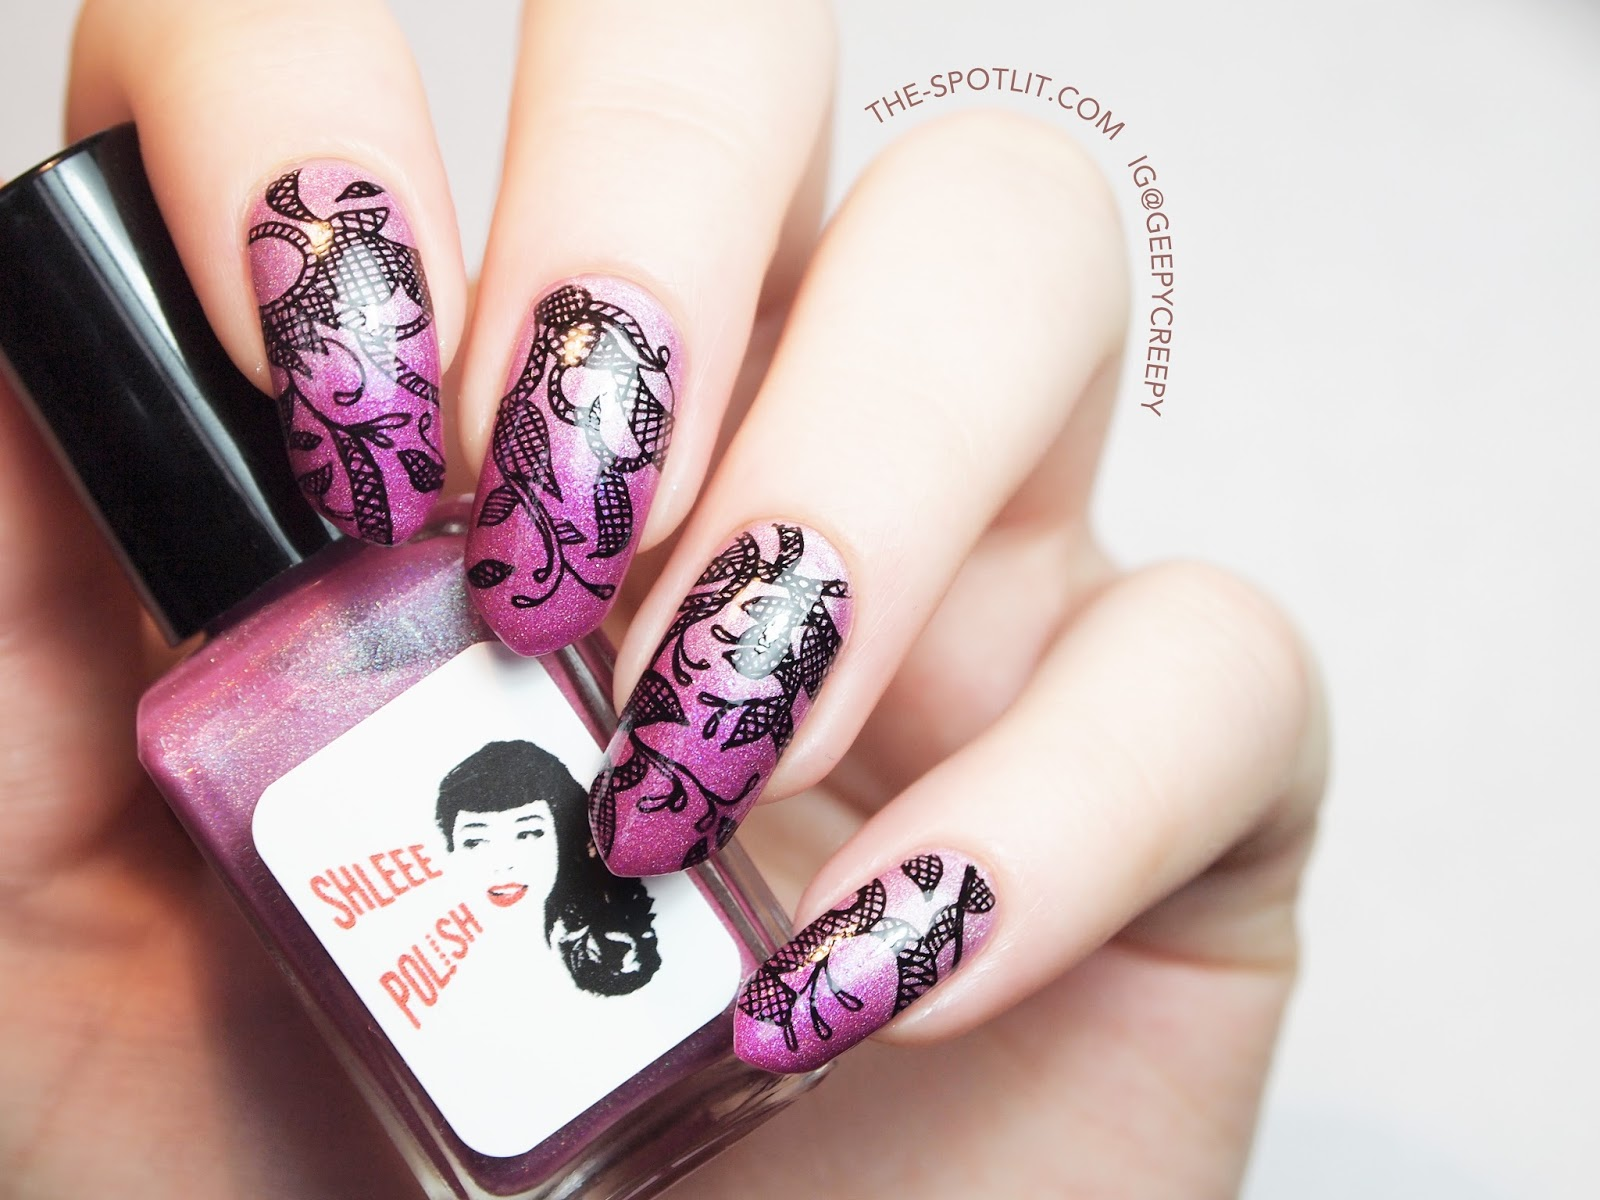 Black and pink lace-inspired hand-drawn nail art using Shleee Polish Hey, Lolita, Hey and Miss Magenta.